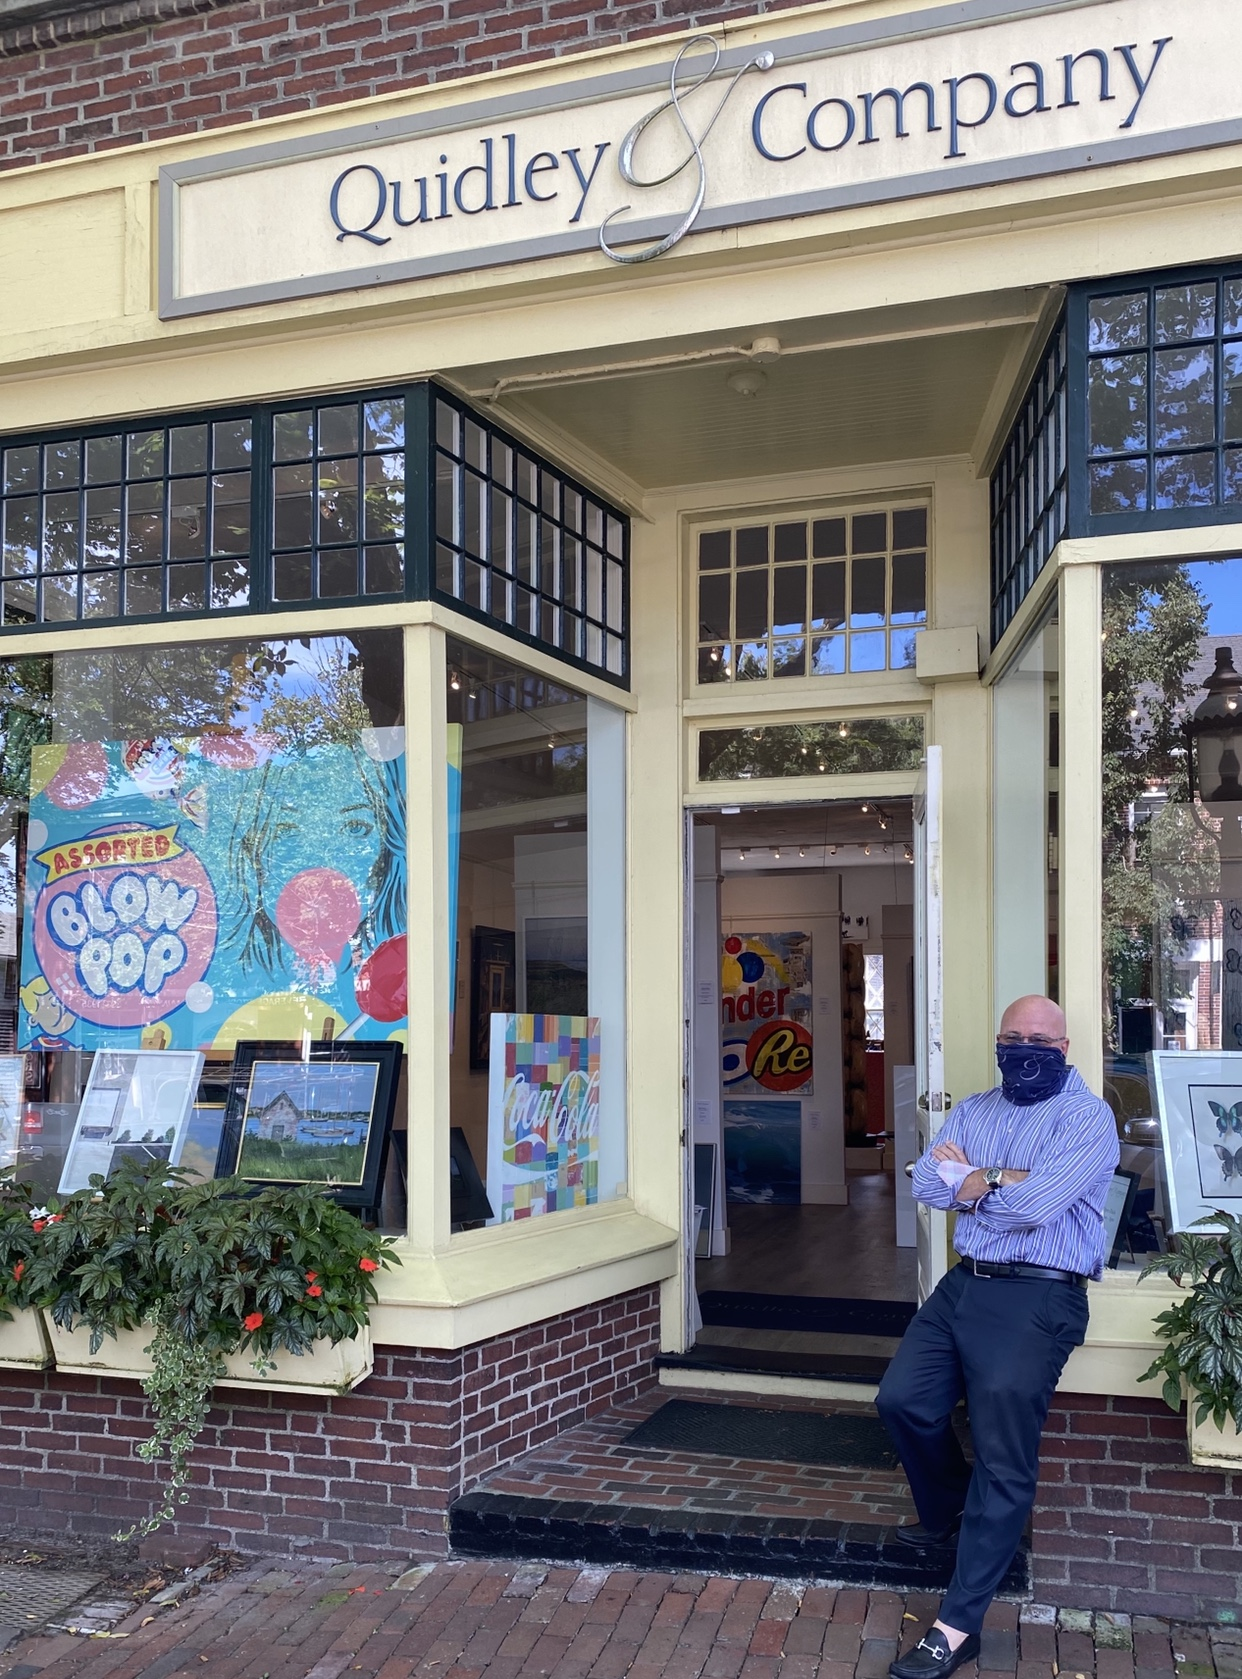 Quidley & Company Nantucket Storefront Stories